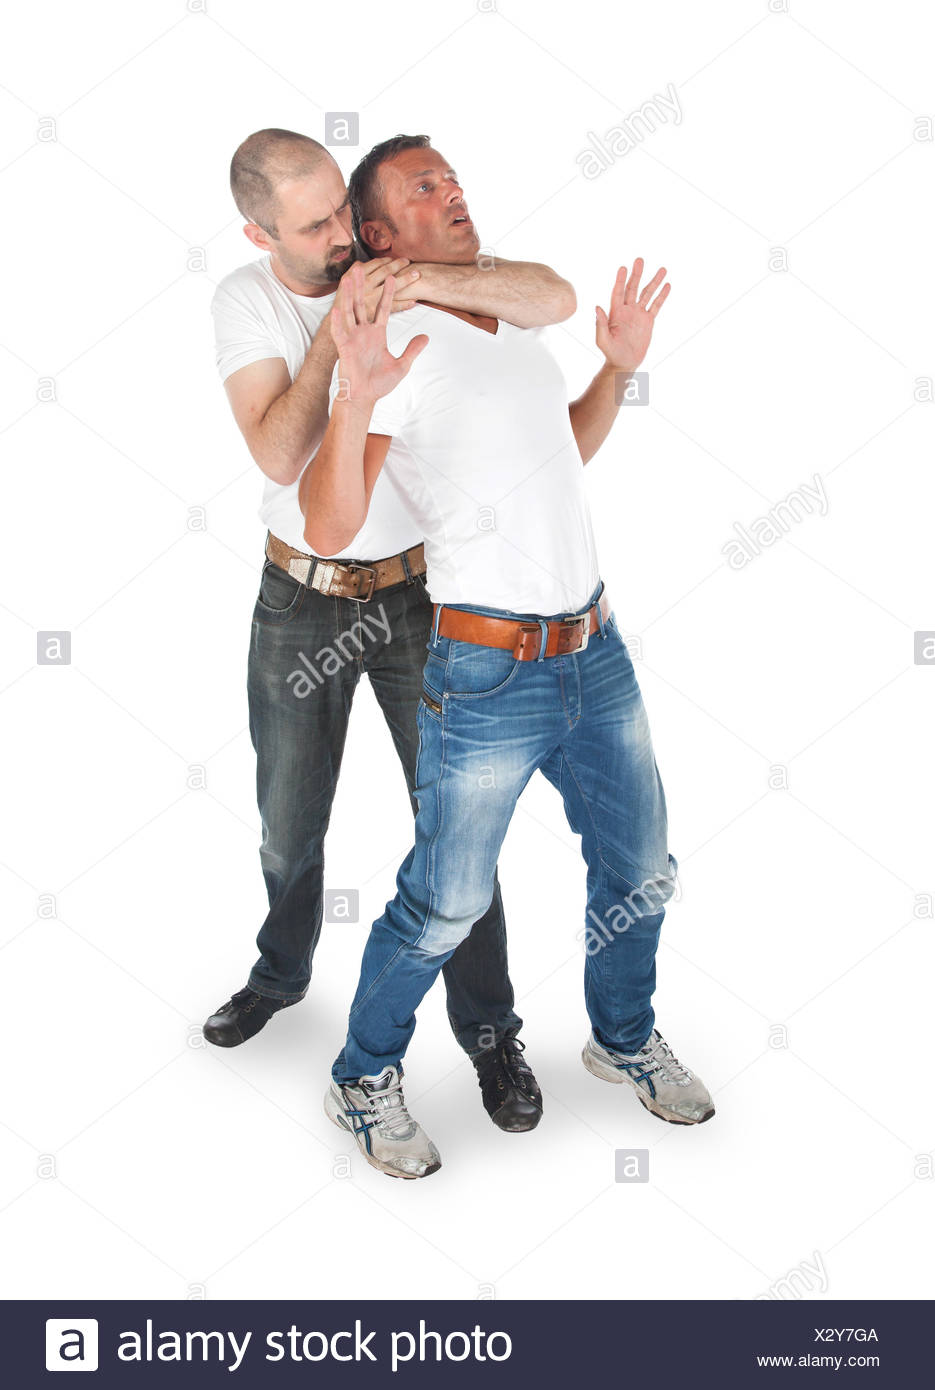 Man attacking from another man - Stock Image